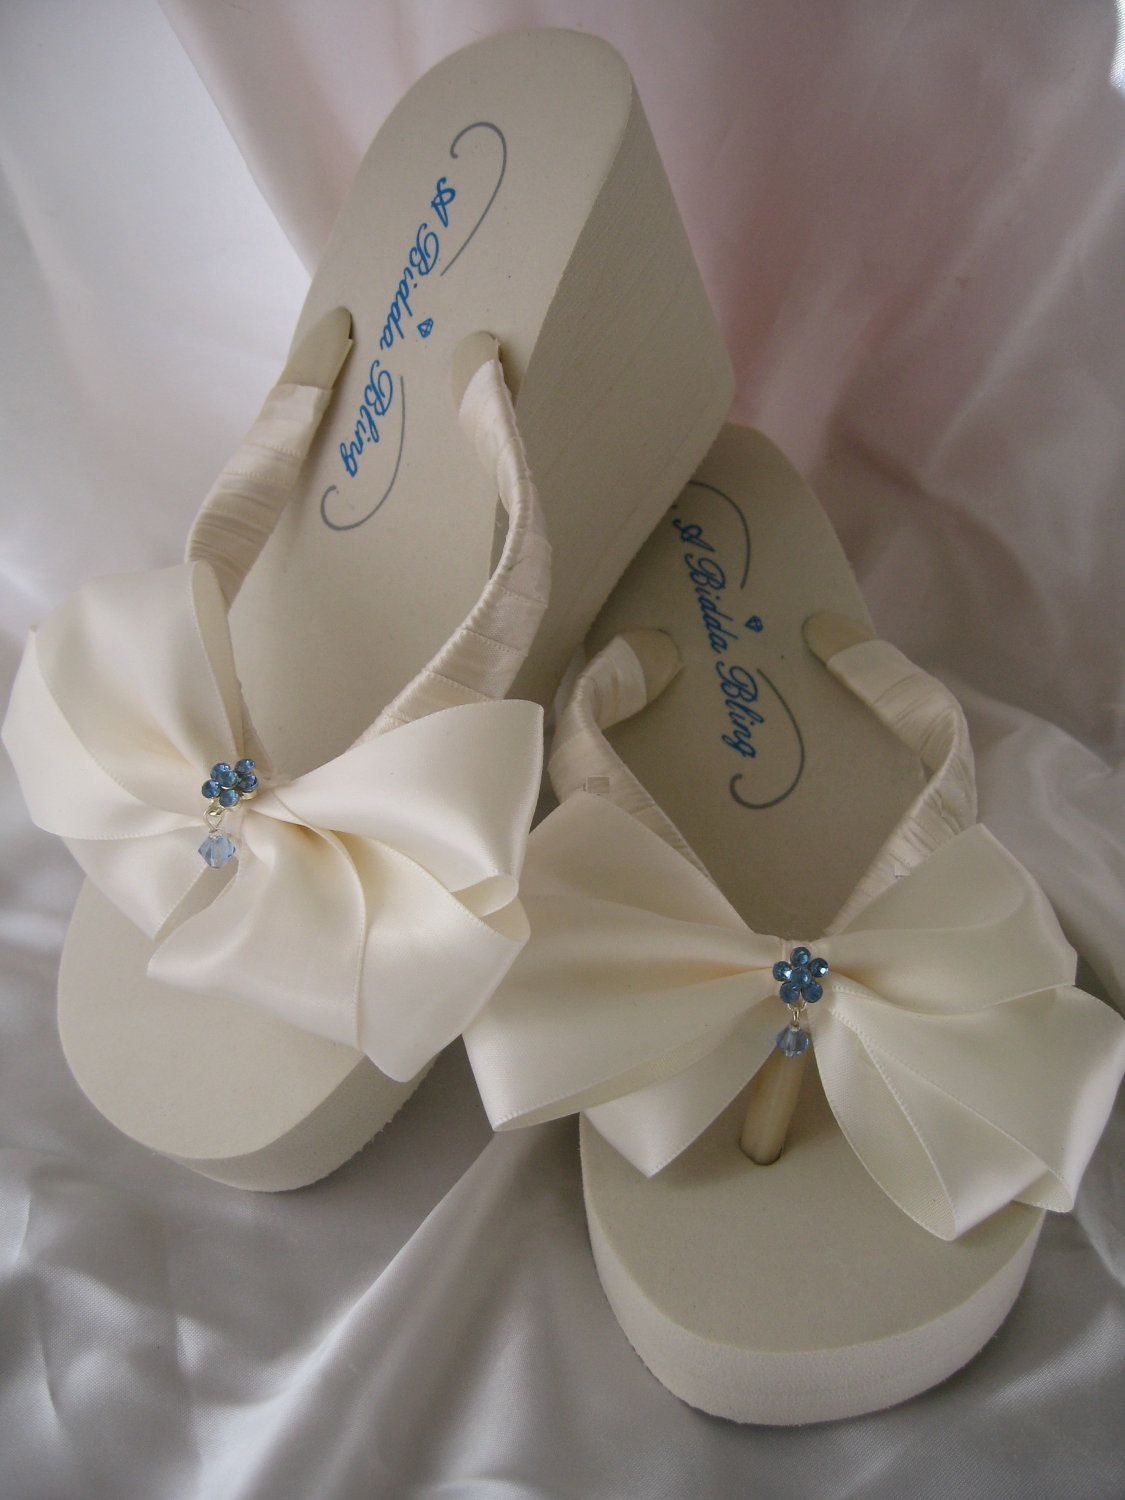 ece67c626 Wedding Shoes Ivory Bridal Shoes Ivory or White Flip Flops Sandals with  Ivory or White Satin Bow and Something Blue Crystal Flowers.  49.99